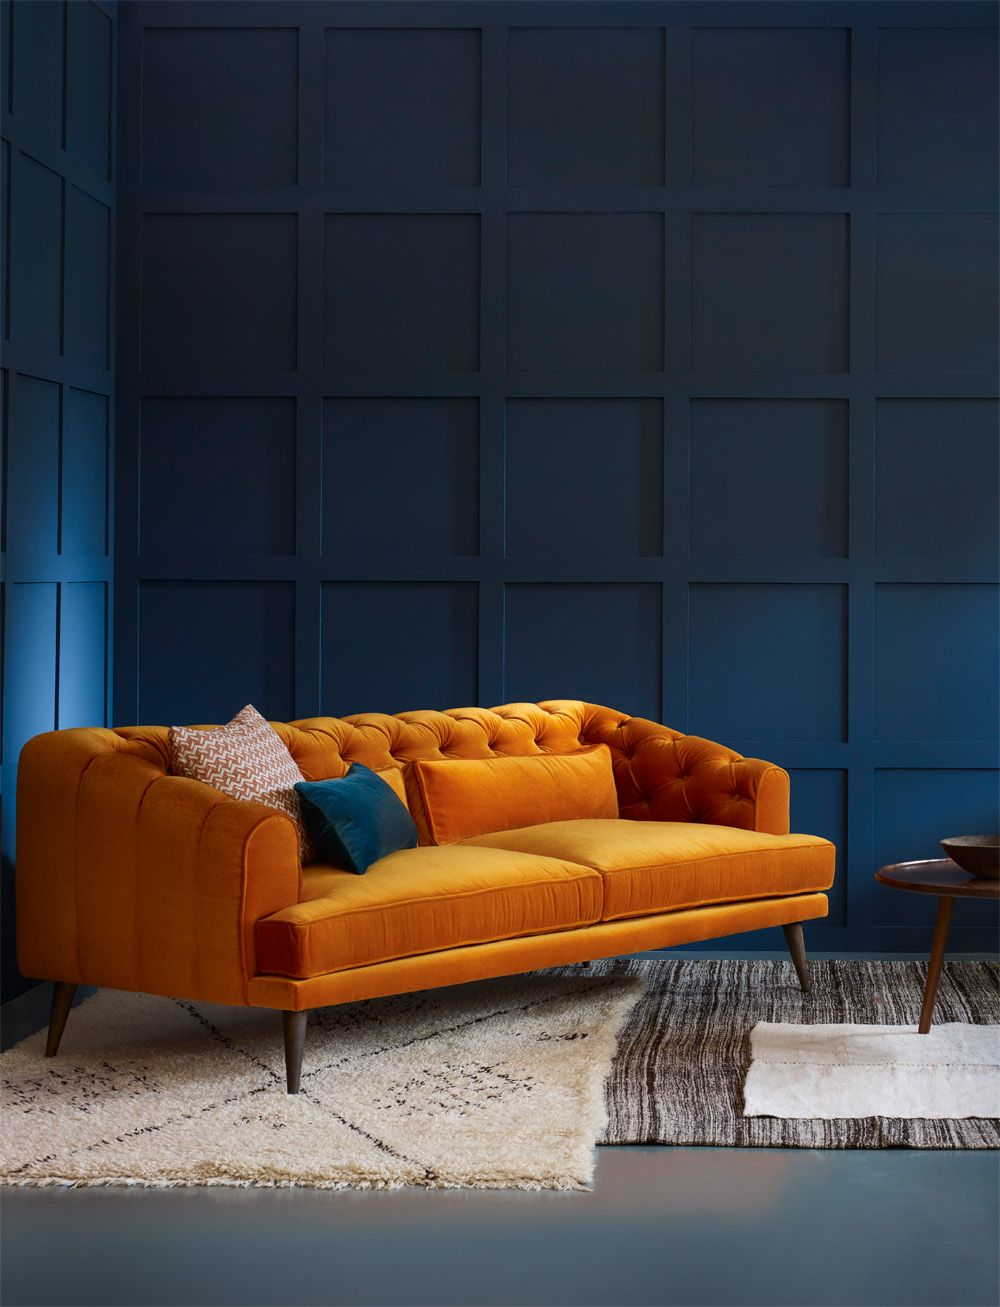 Captivating Earl Grey Sofa, Upholstered In Orange Mohair Velvet. With Extra Deep Seatsu2026